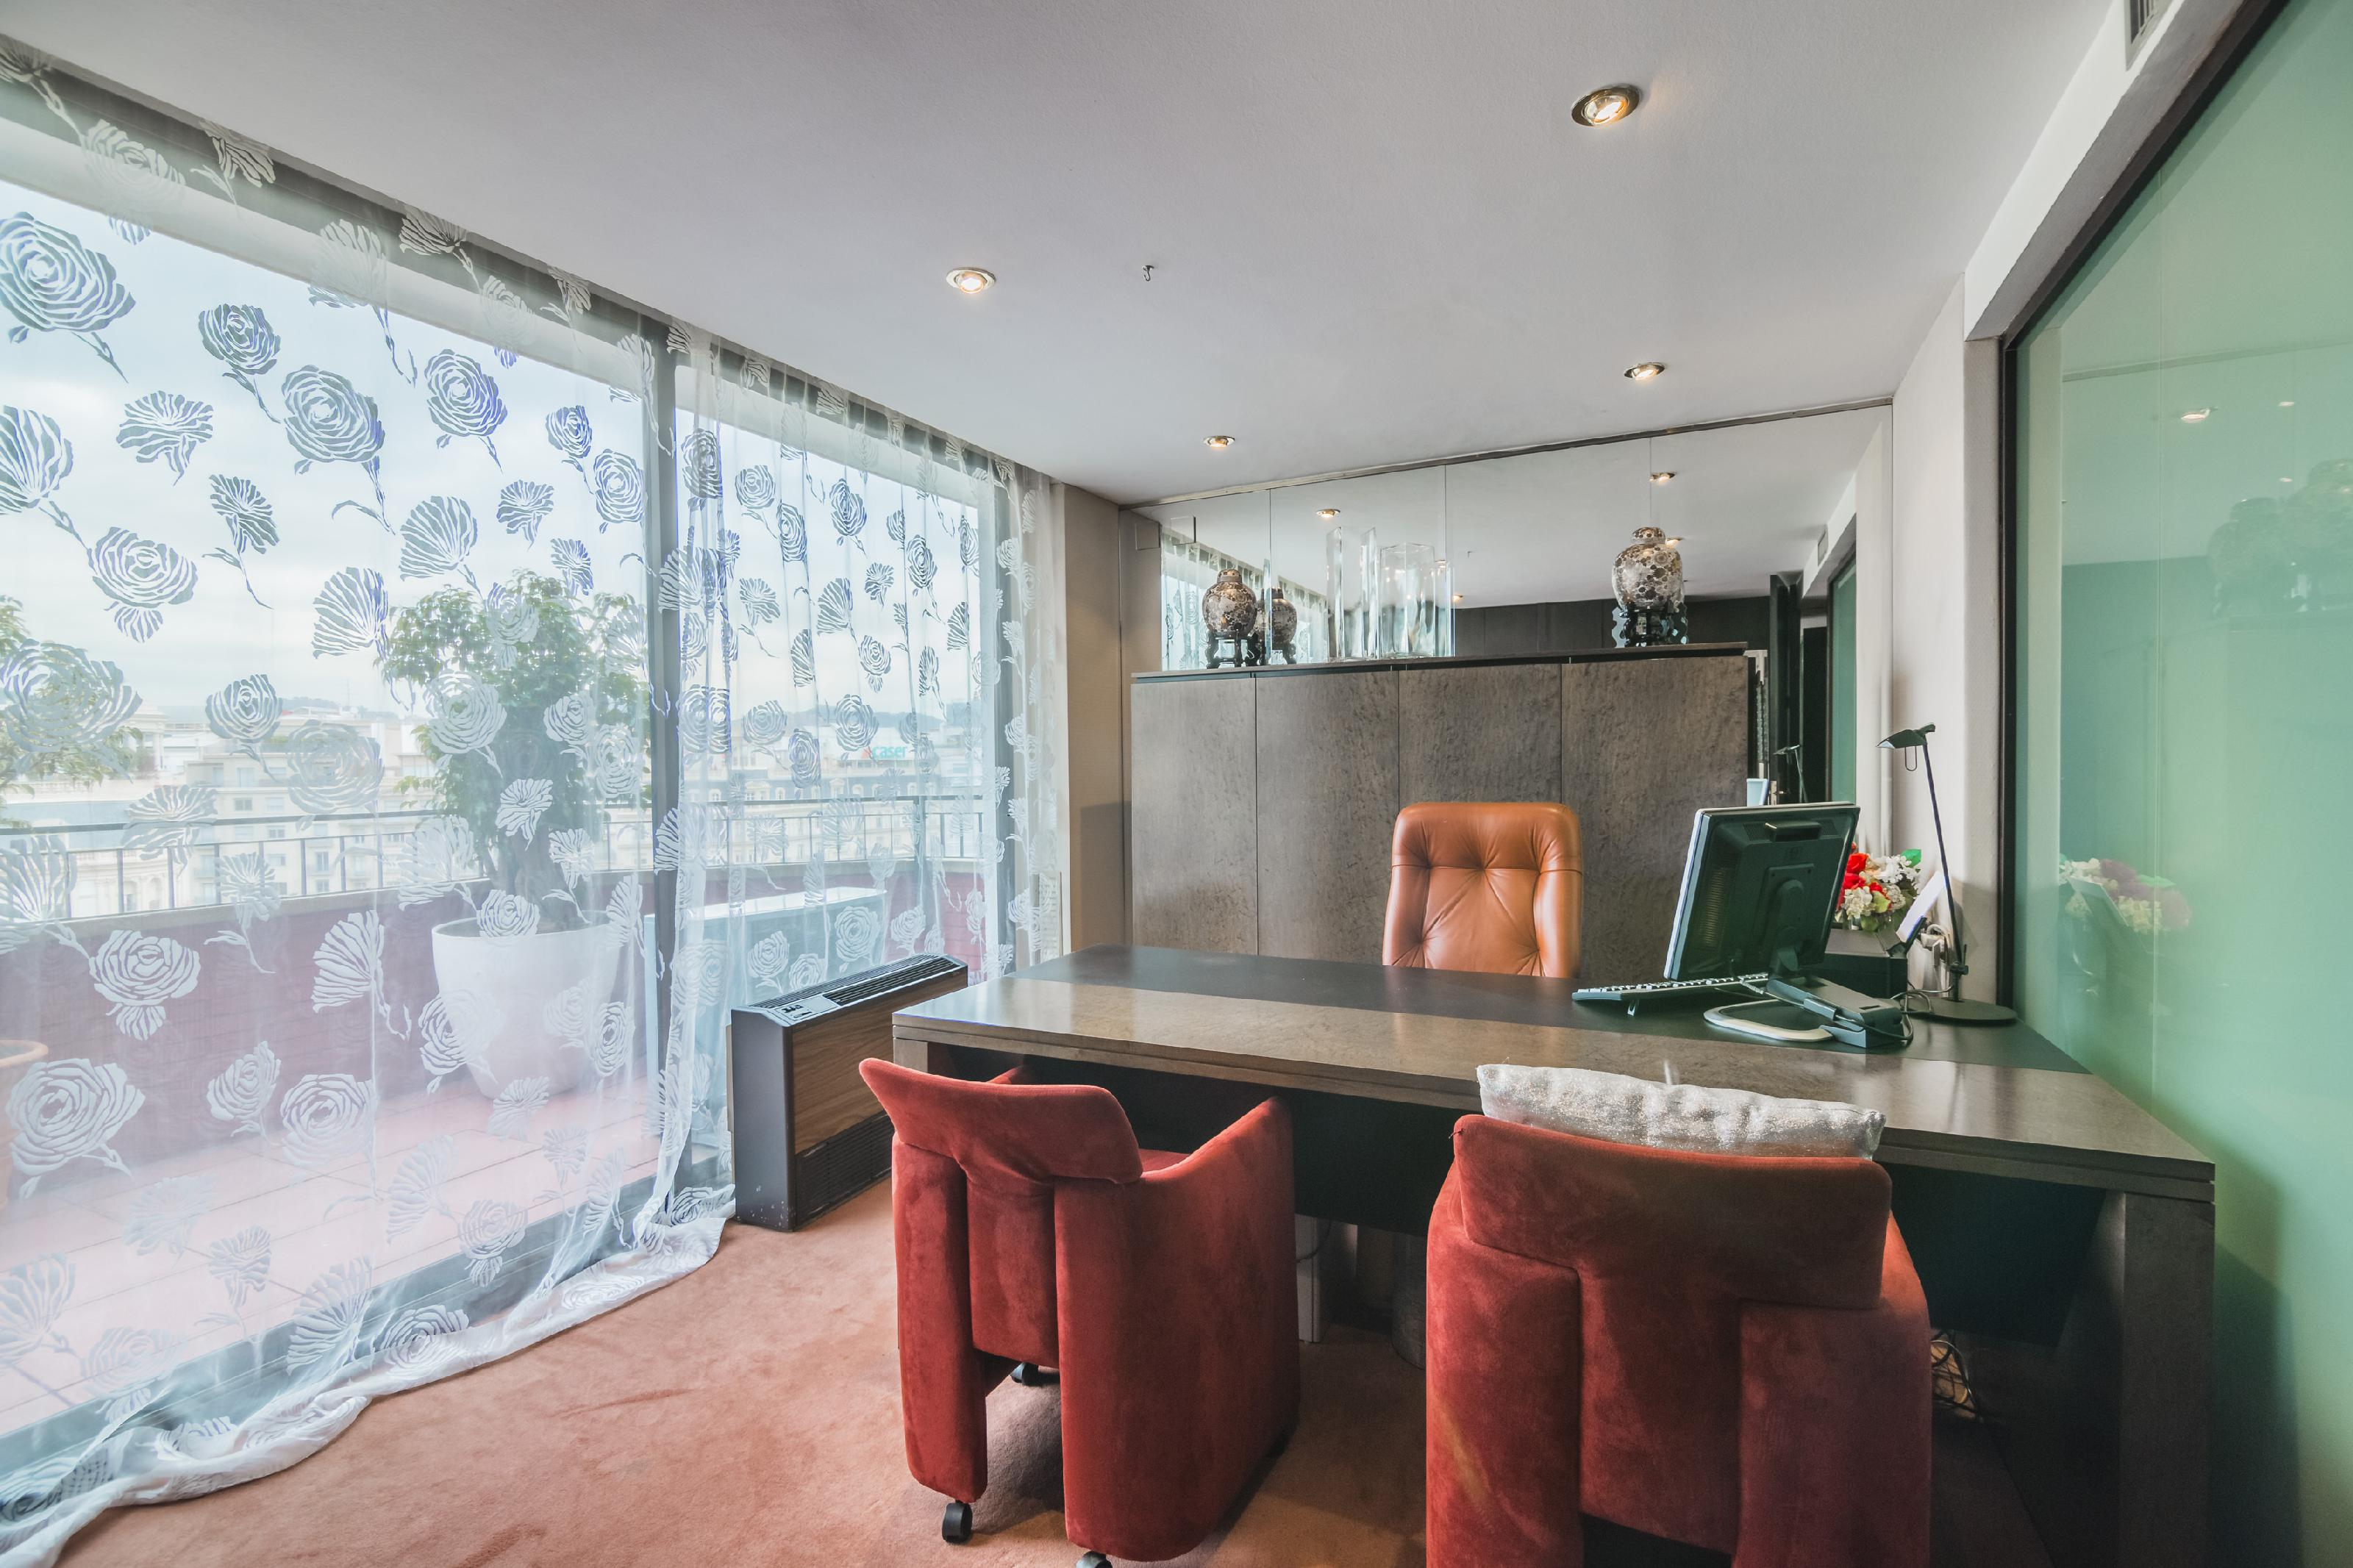 223855 Penthouse for sale in Les Corts, Les Corts 4